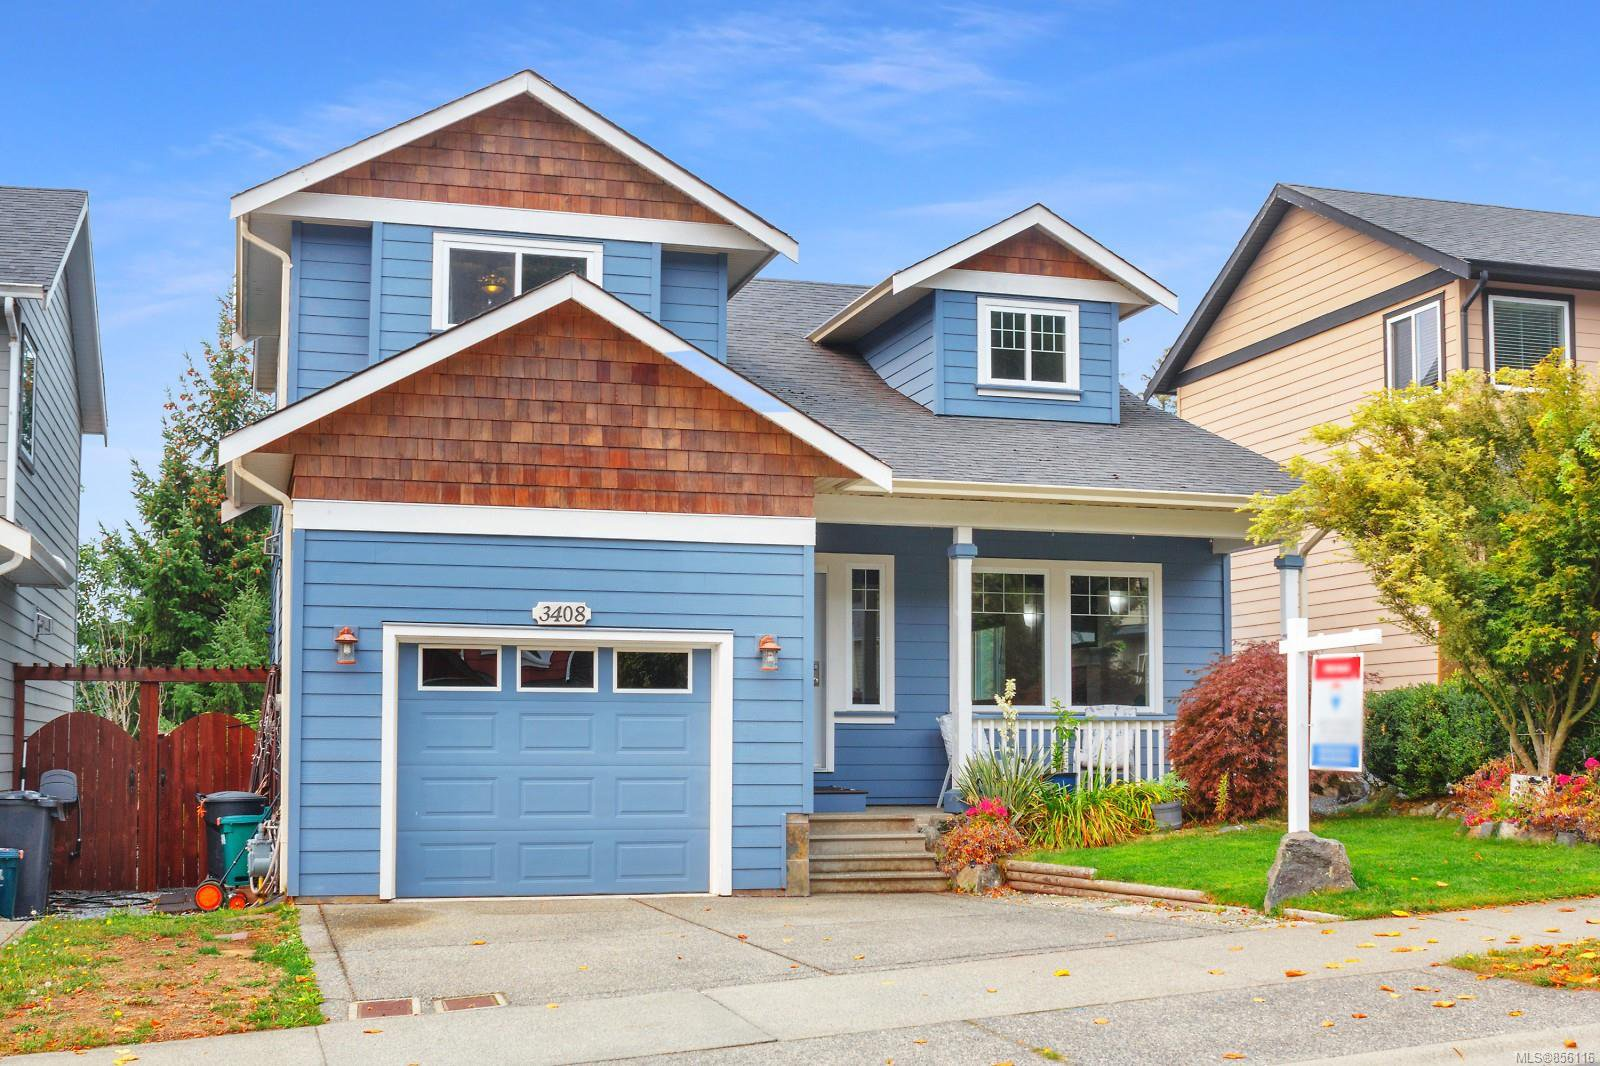 Main Photo: 3408 Turnstone Dr in : La Happy Valley House for sale (Langford)  : MLS®# 856116